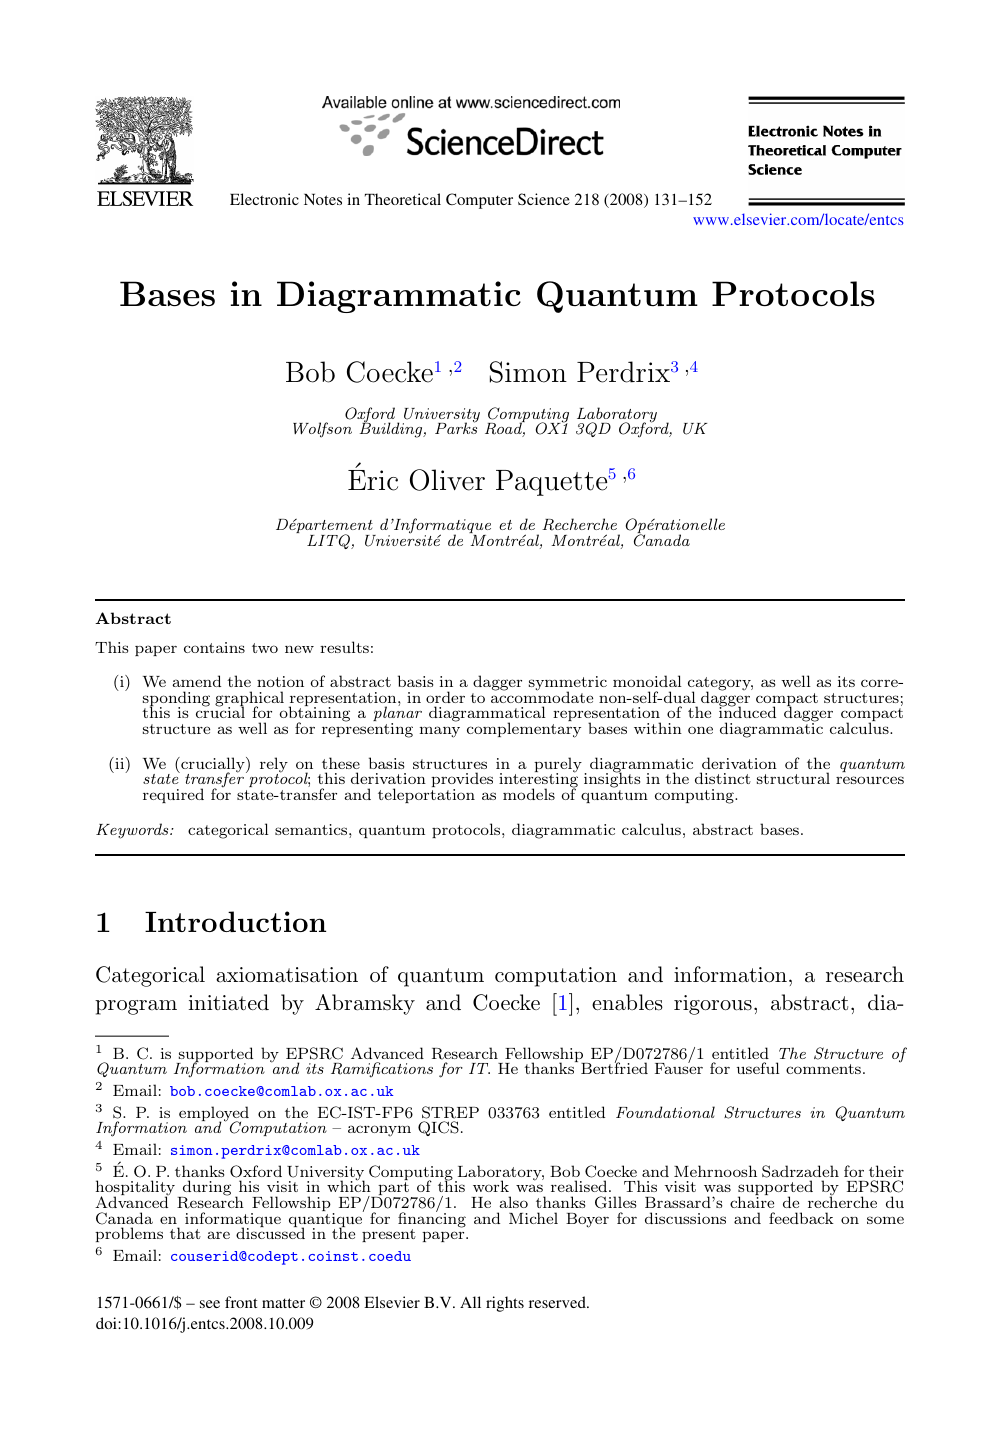 Bases in Diagrammatic Quantum Protocols – topic of research